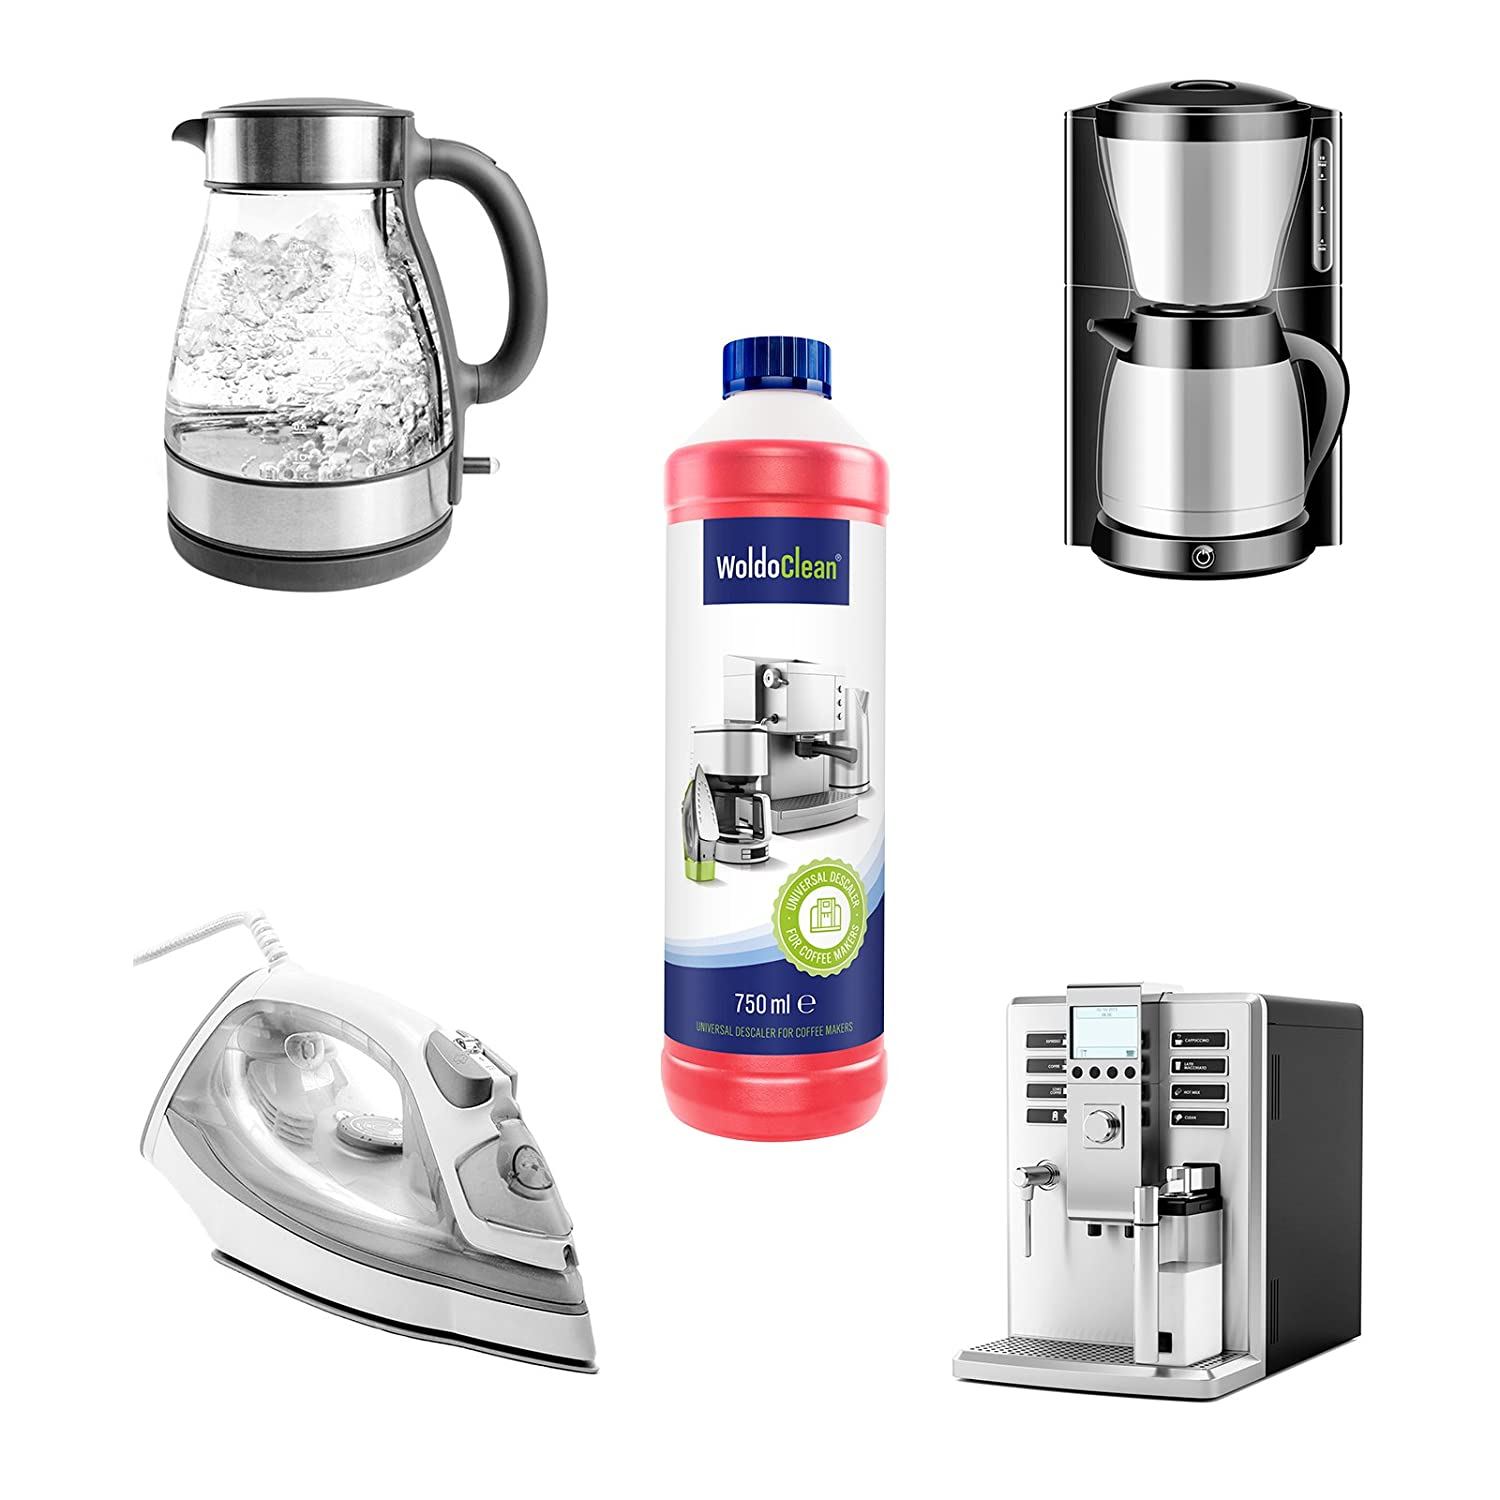 Woldoclean I 750Ml Descaler & Cleaner I For Coffee And